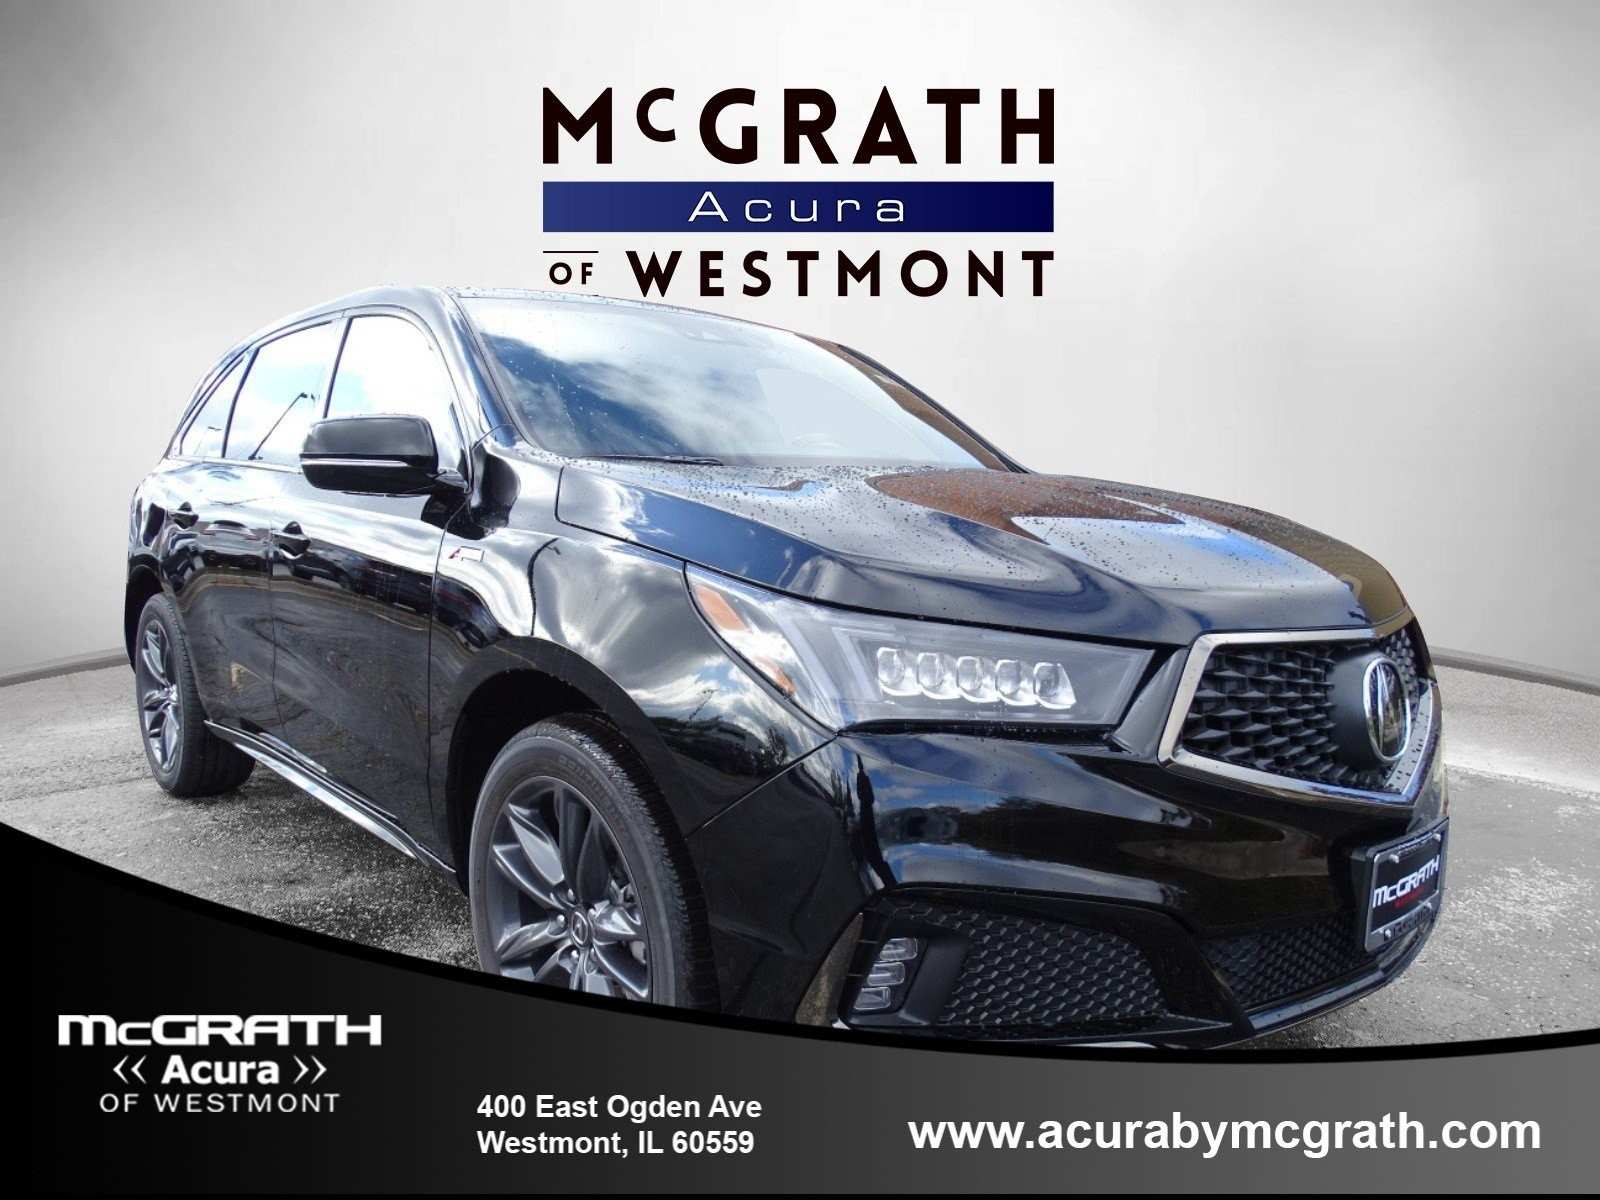 79 All New Best Acura Mdx 2019 Release Date Price And Review Spesification by Best Acura Mdx 2019 Release Date Price And Review